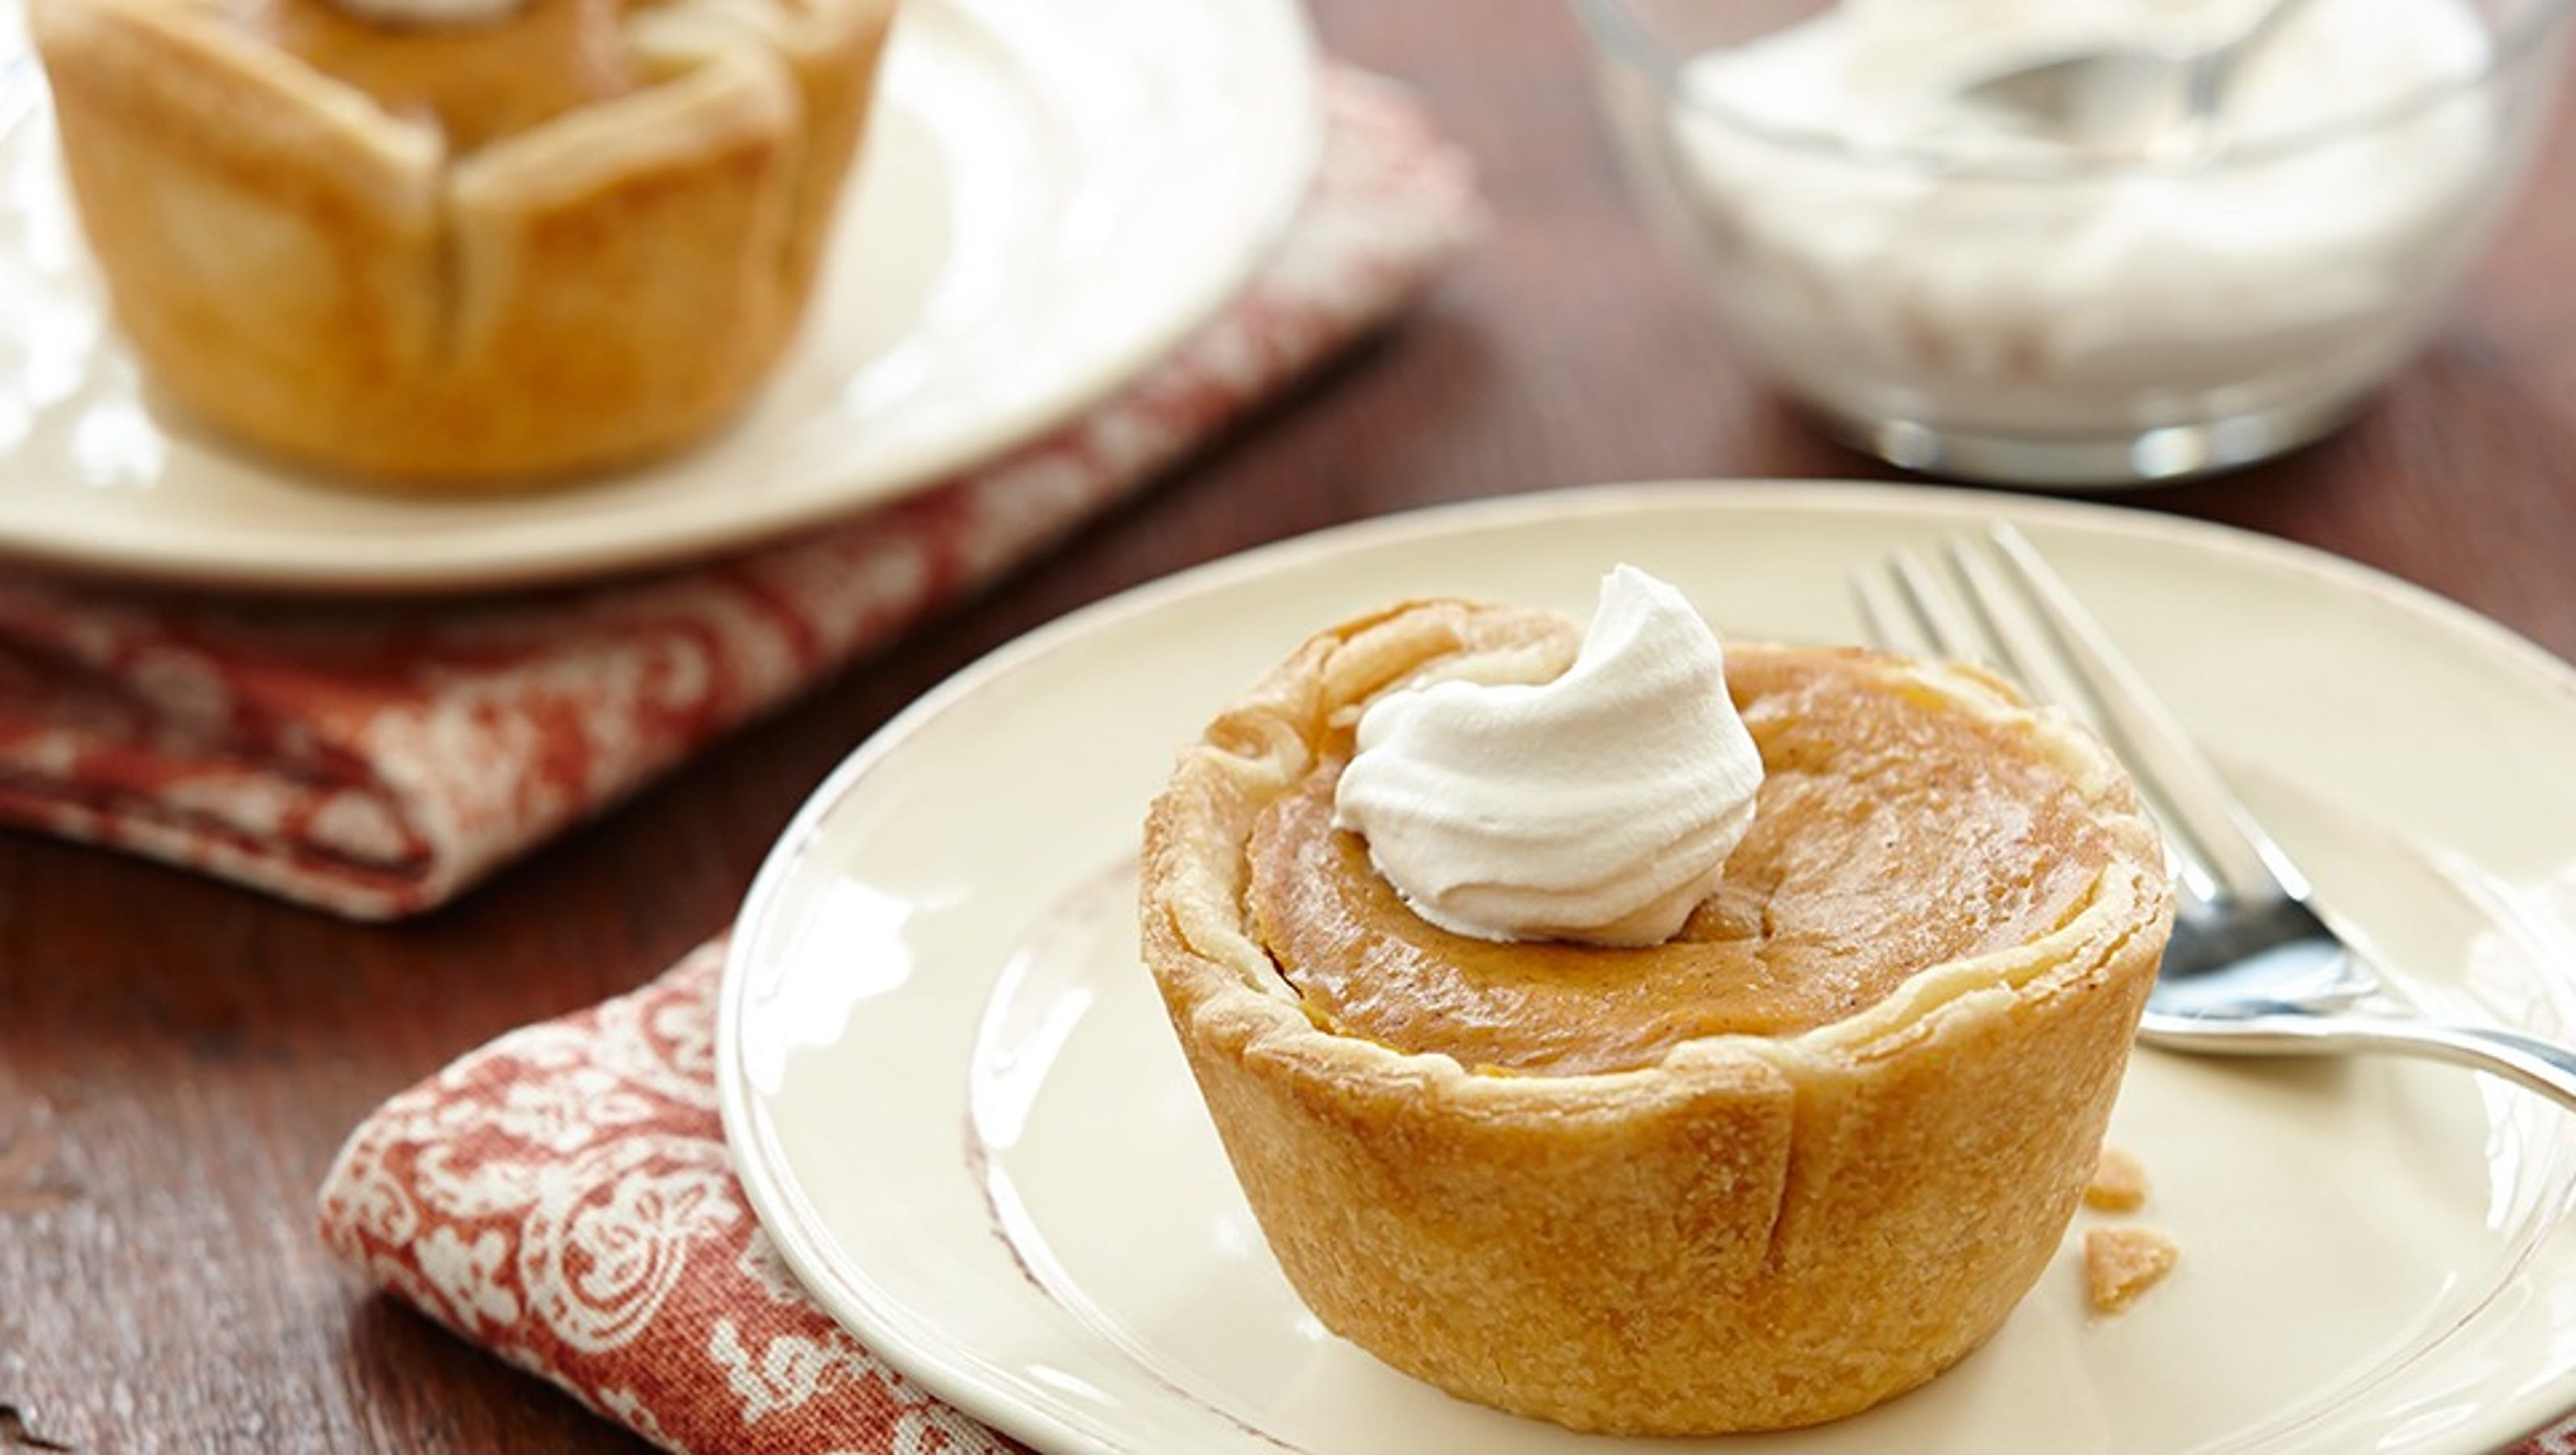 Nov 12, · Easy, ingredient mini vegan pumpkin pies with coconut oil crust! Naturally sweetened, simple to make, and so flaky and delicious! The 5/5(15).